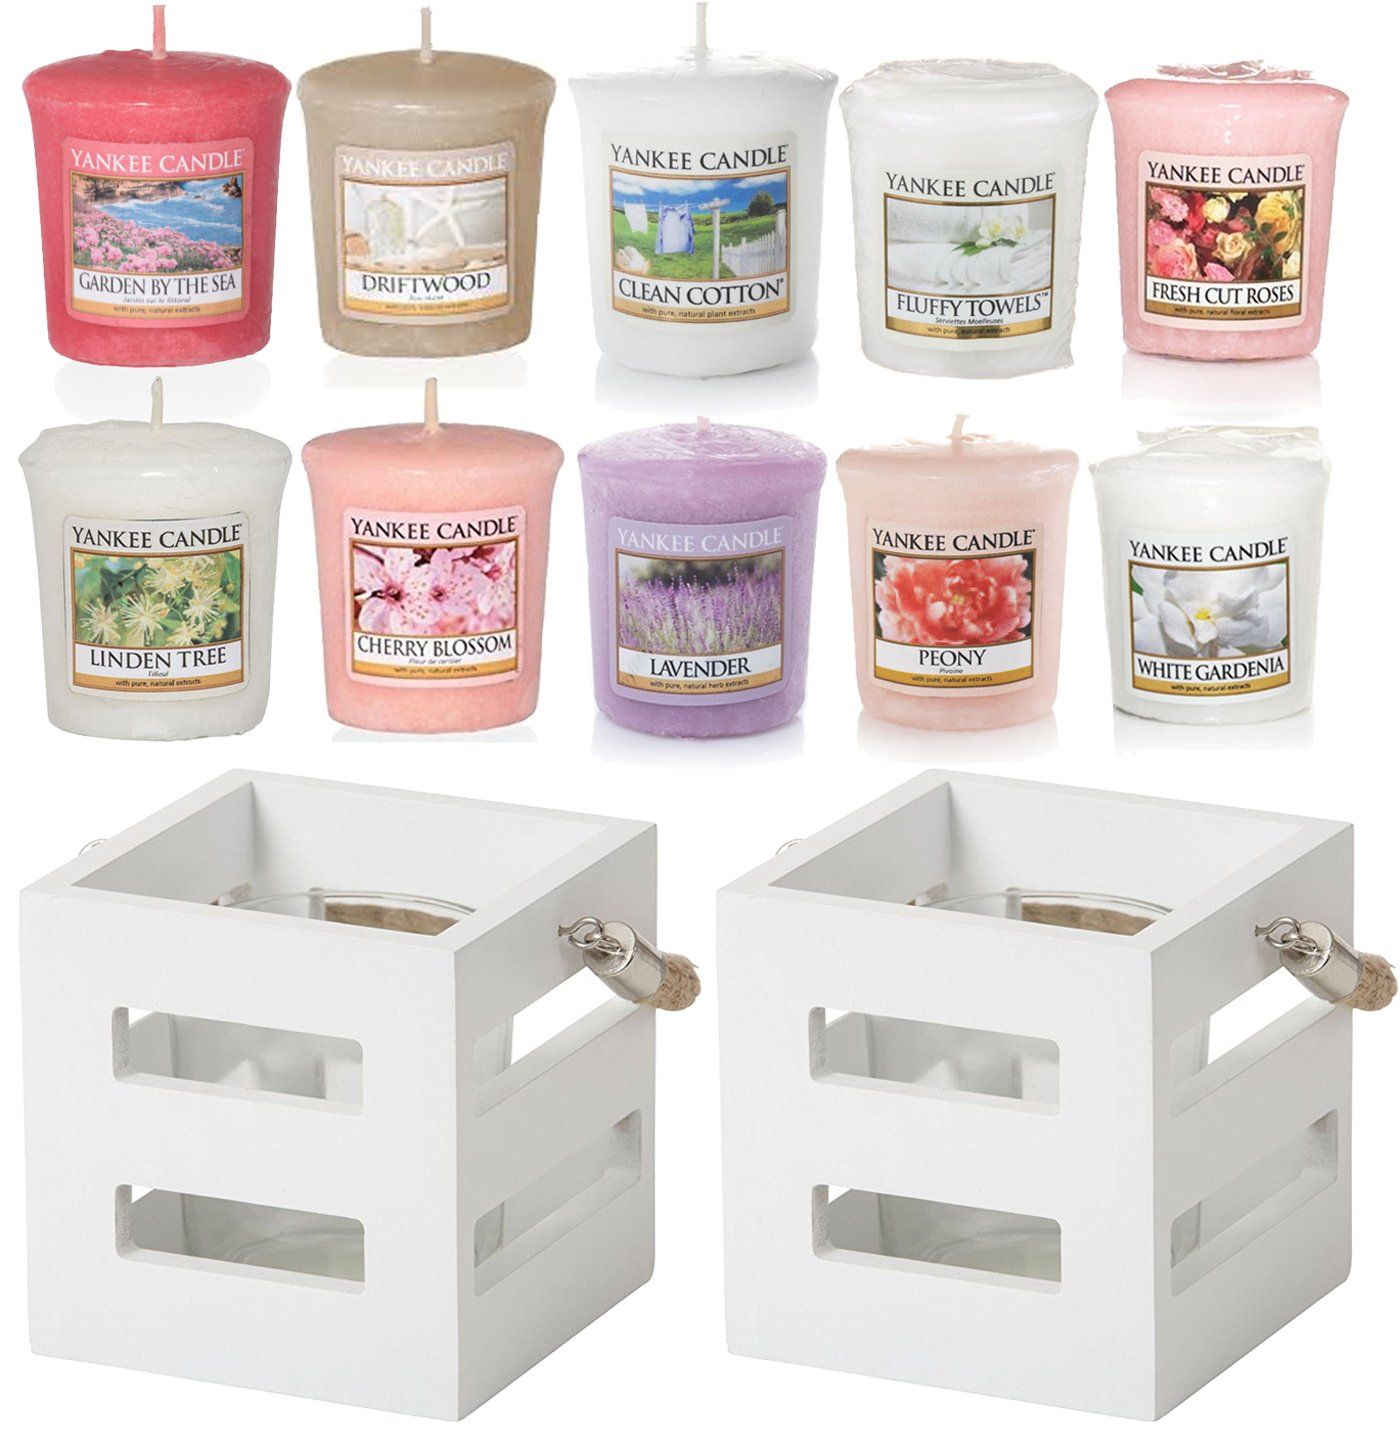 Yankee Candle, 2 portacandele ufficiali bianco in stile marittimo, portacandele in legno + 10 candele Votive Sampler 2portacandele ufficiali bianco in stile marittimo portacandele in legno + 10 candele VotiveSampler My Planet Yankee Candle